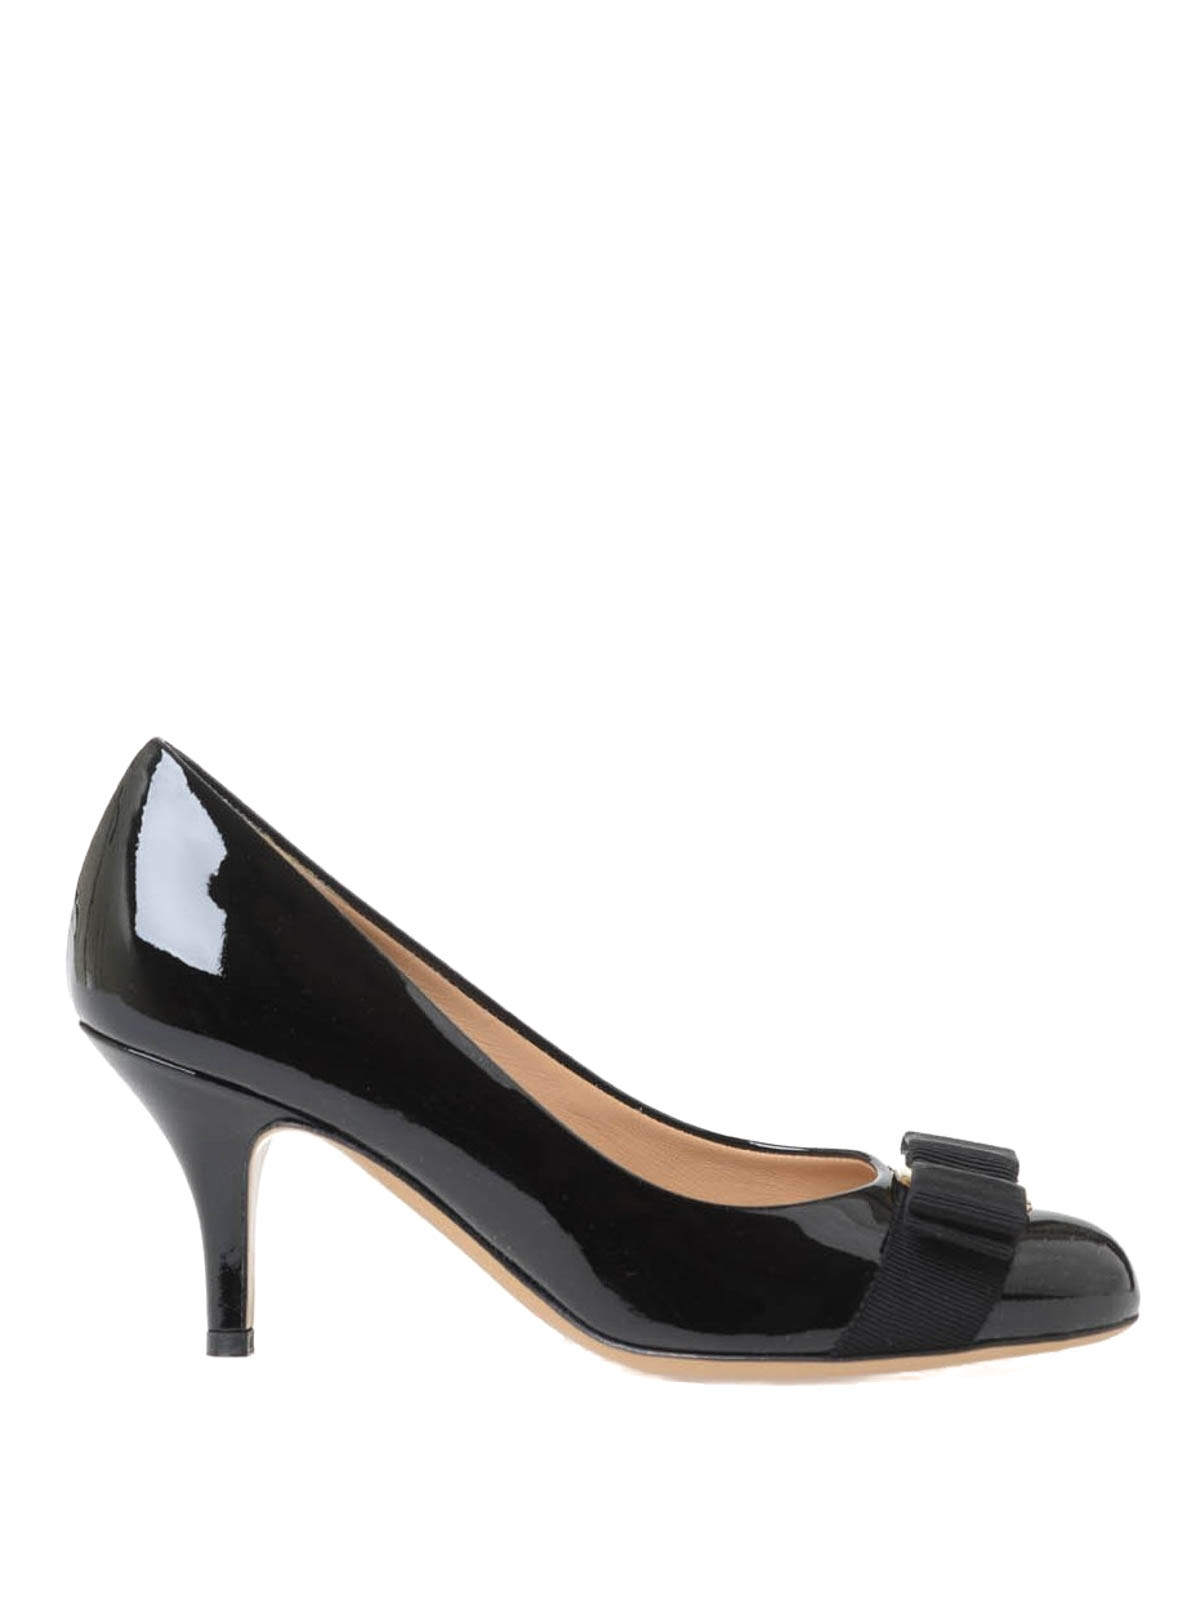 Spring Court Shoes Sale